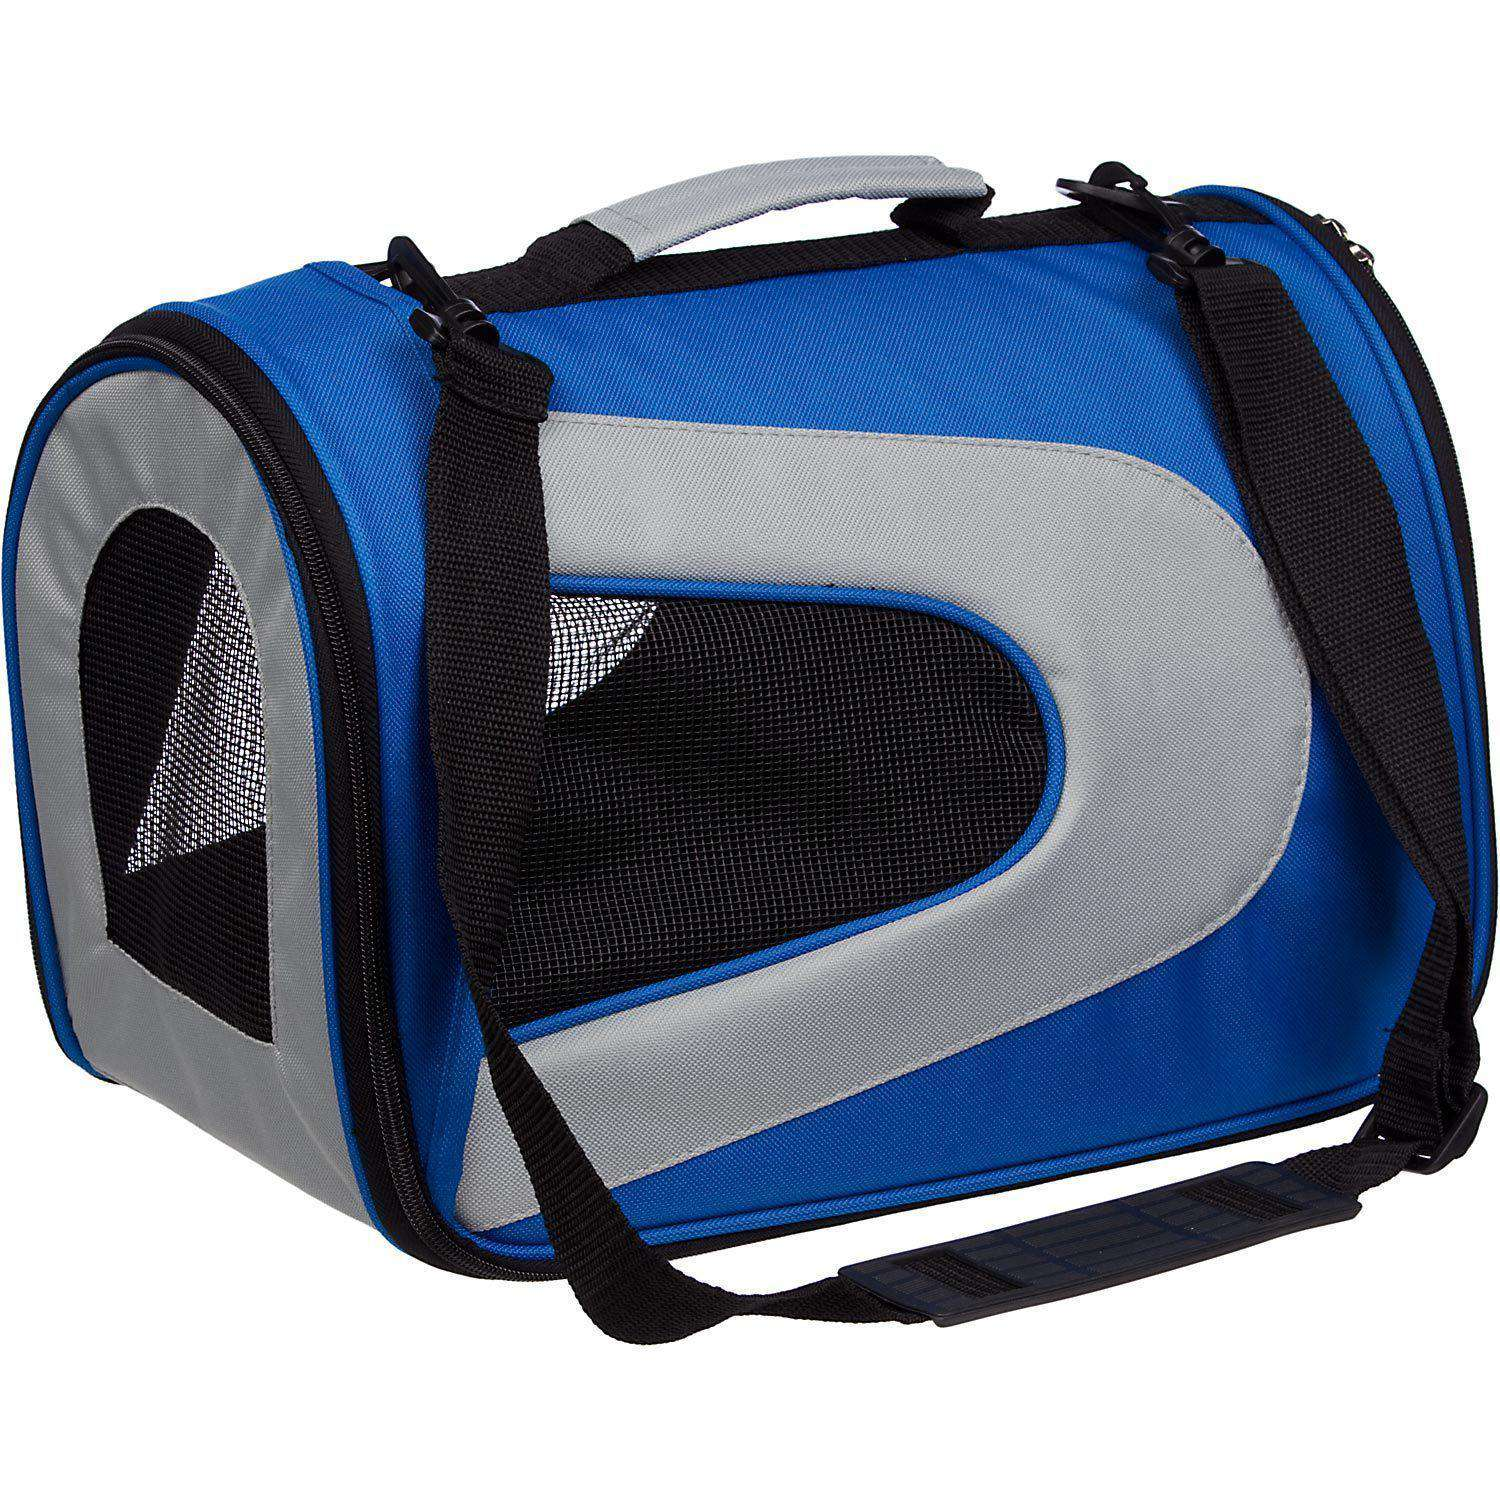 Airline Approved Folding Zippered Sporty Mesh Pet Carrier - Blue & Grey-Pet Life-DirtyFurClothing